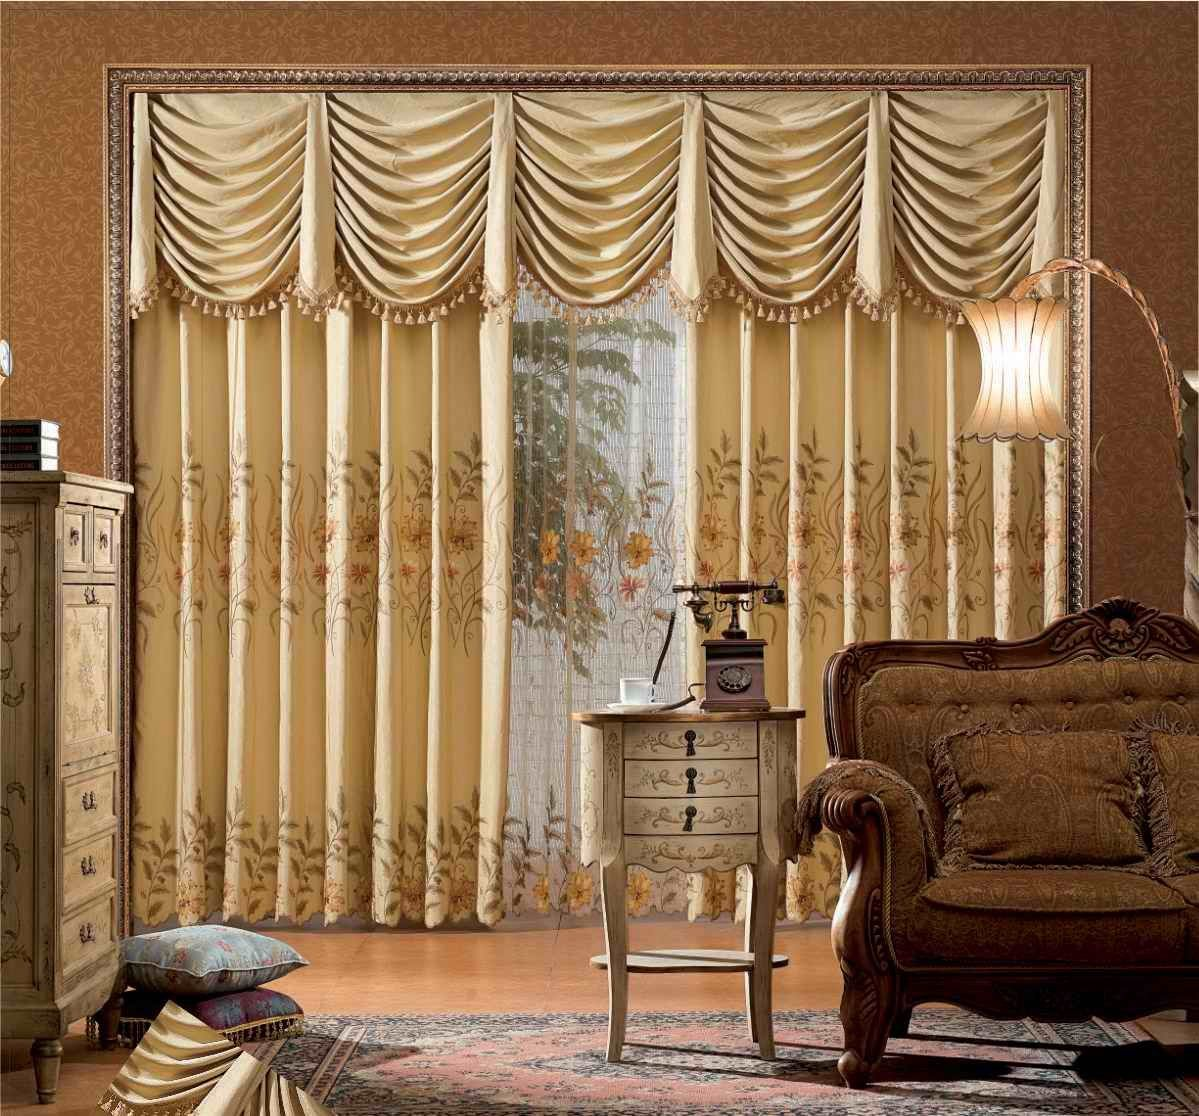 design curtains for living room. Home design astounding curtains for living room with brown fabric Make Modern Living Room Curtains  http highlifestyle net wp